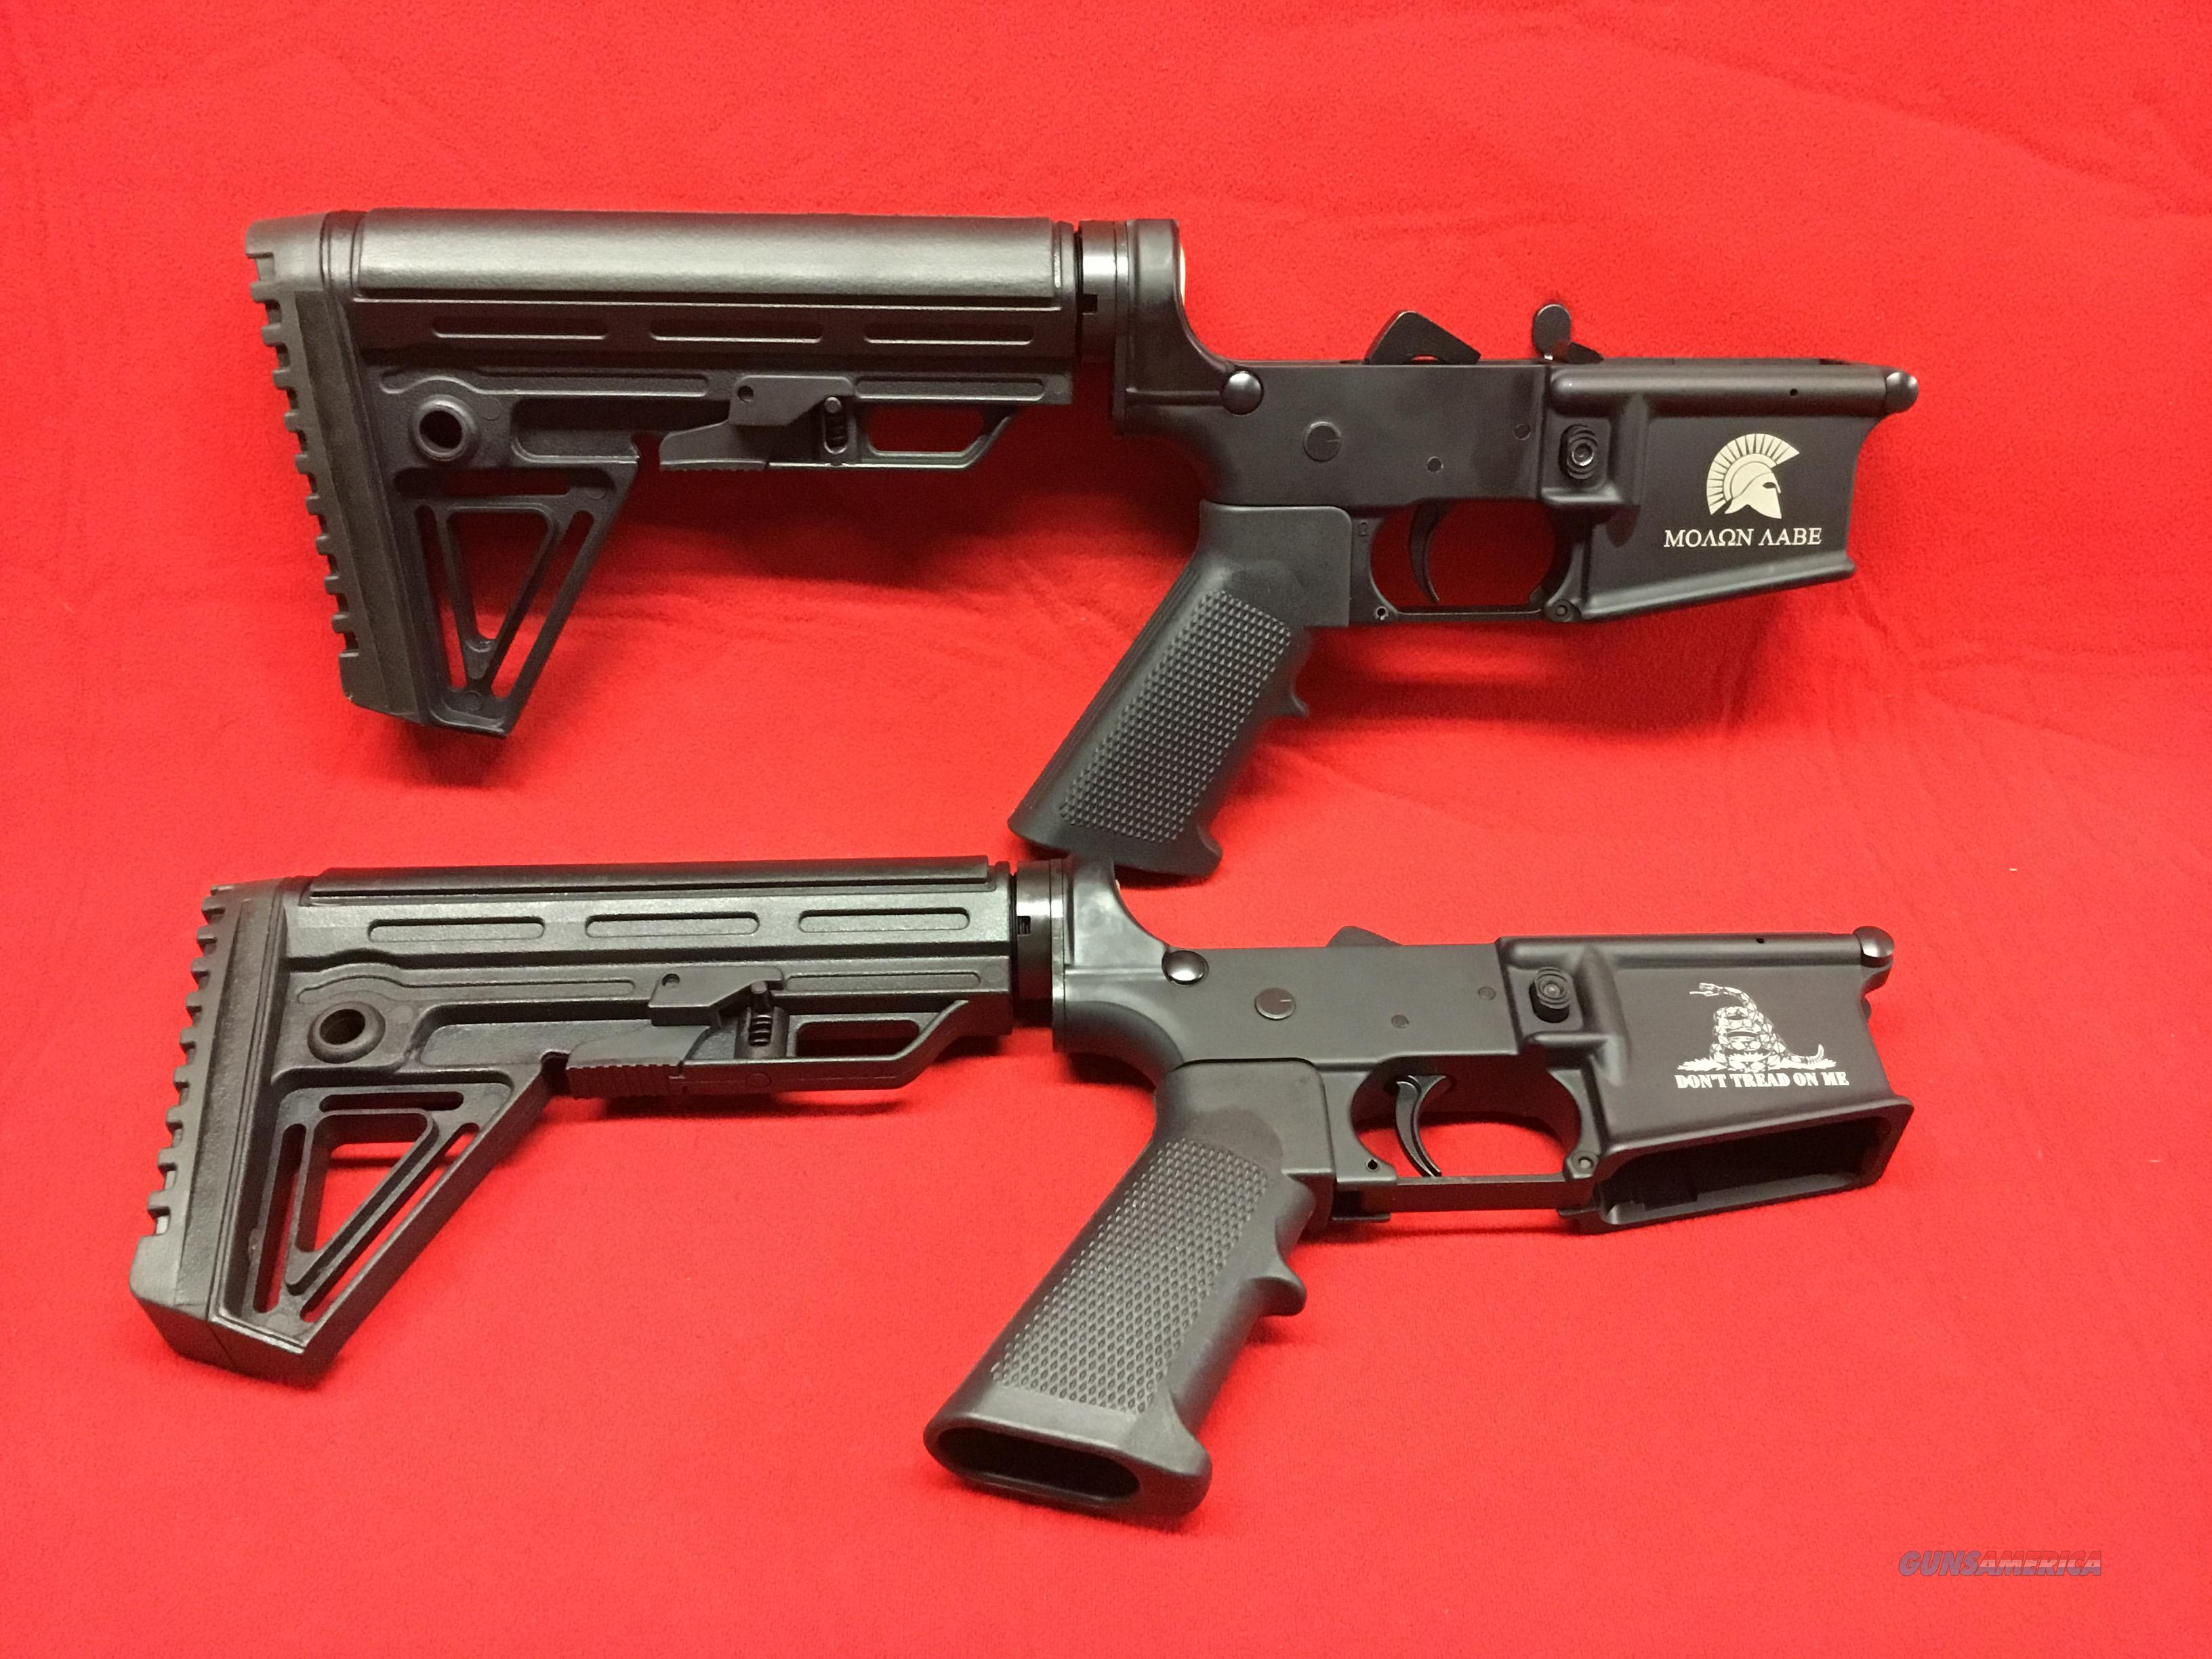 TWO    Anderson  Complete  Lowers  with Stocks  and Engraved  Guns > Rifles > AR-15 Rifles - Small Manufacturers > Lower Only